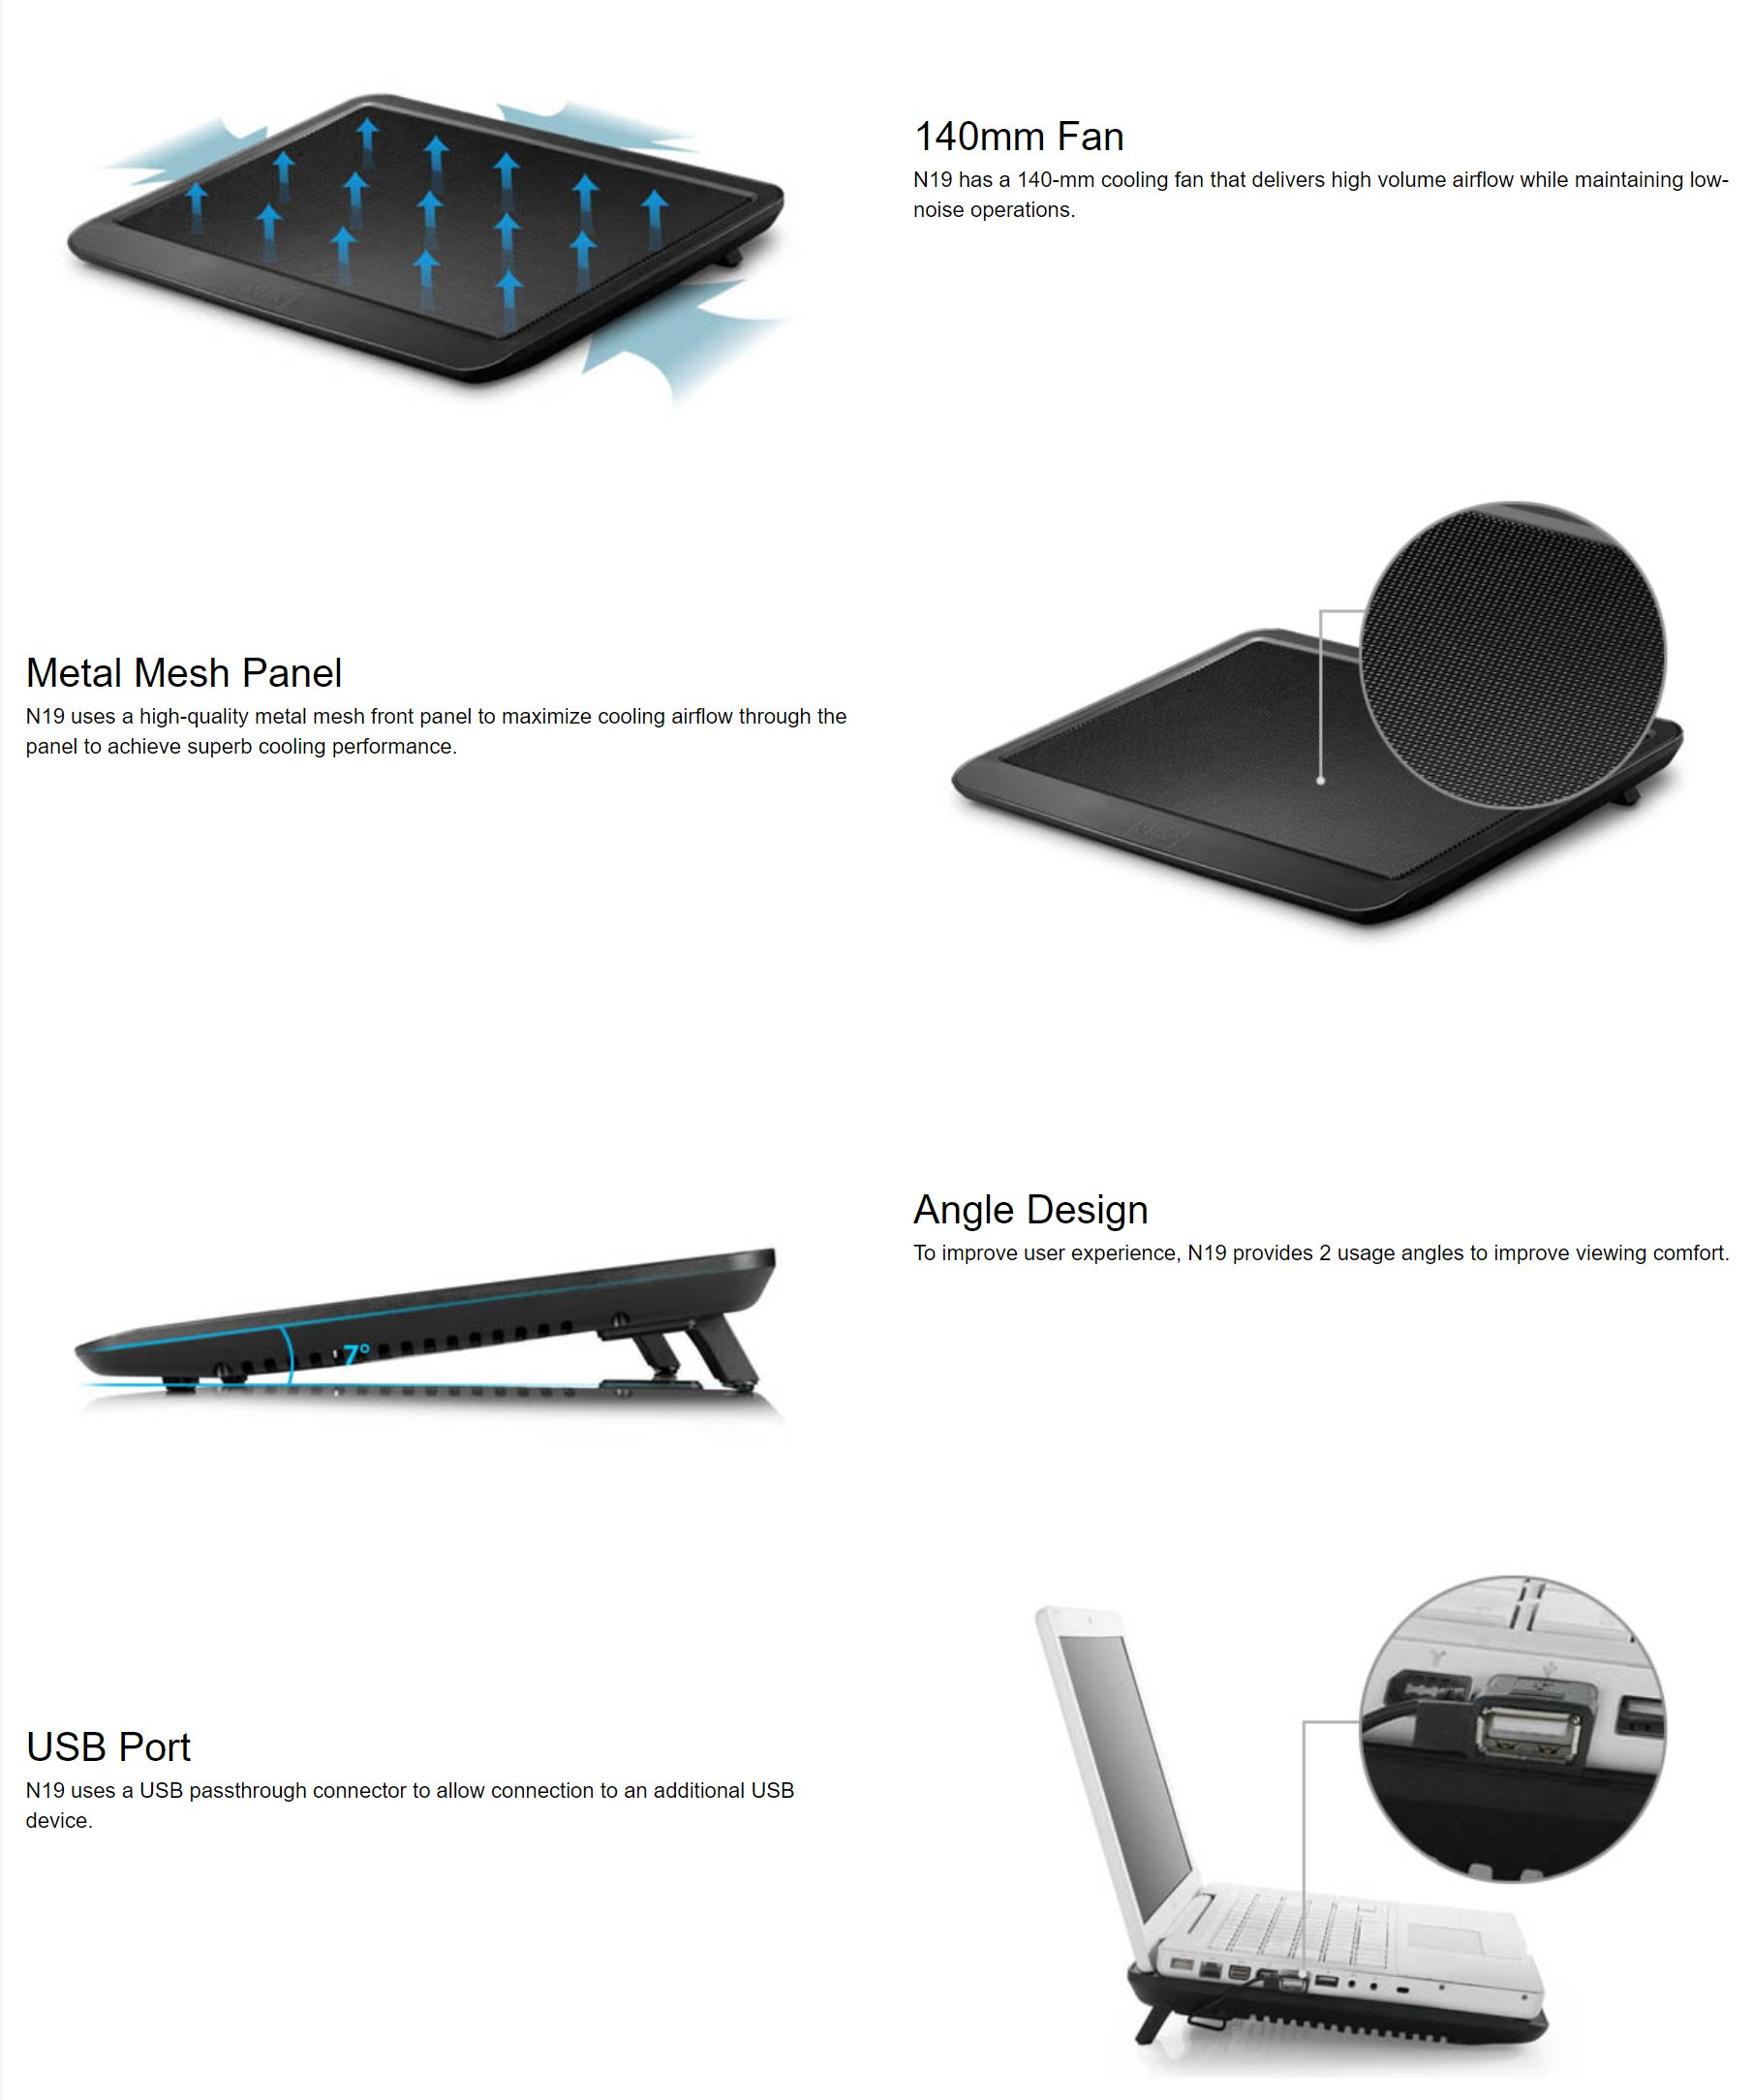 #1578 - 'N19 DEEPCOOL- Laptop Coolers' - www_deepcool_com.jpg